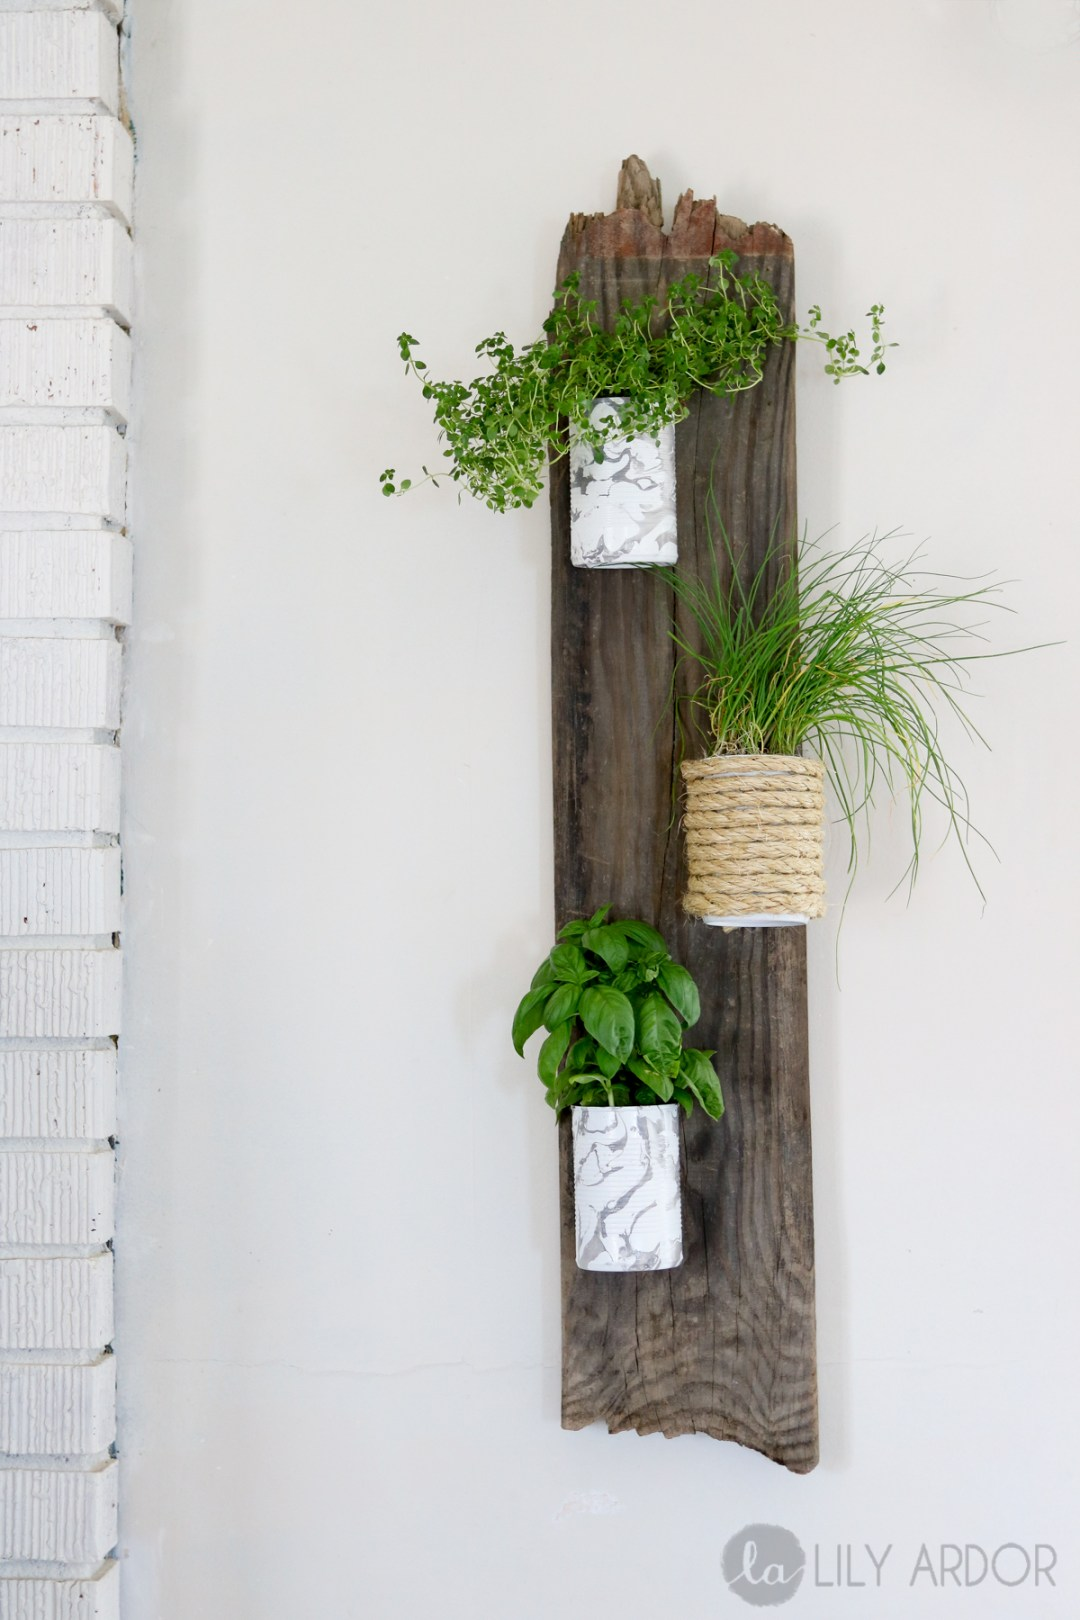 DIY Herb Wall Planter - Compact and RECYCLED!! Lilyardor